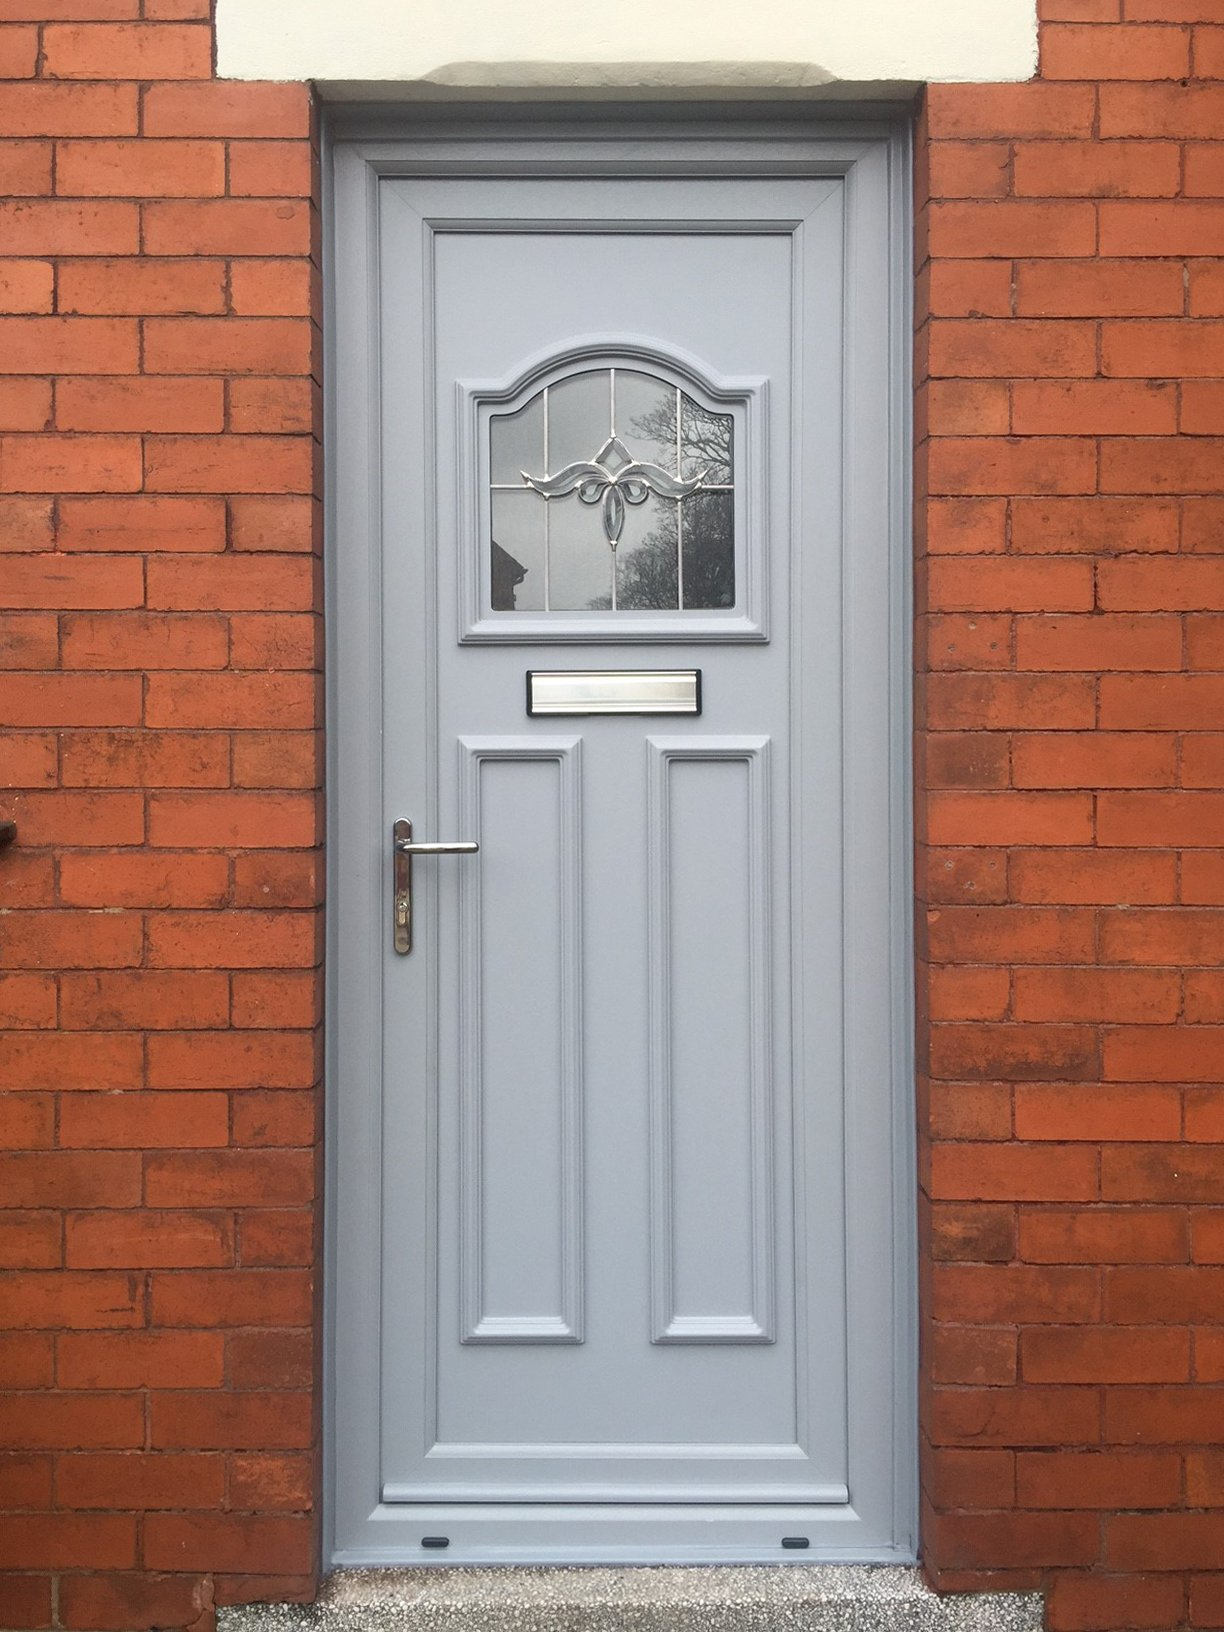 Fully fitted and supply only upvc composite doors by we - Upvc double front exterior doors ...